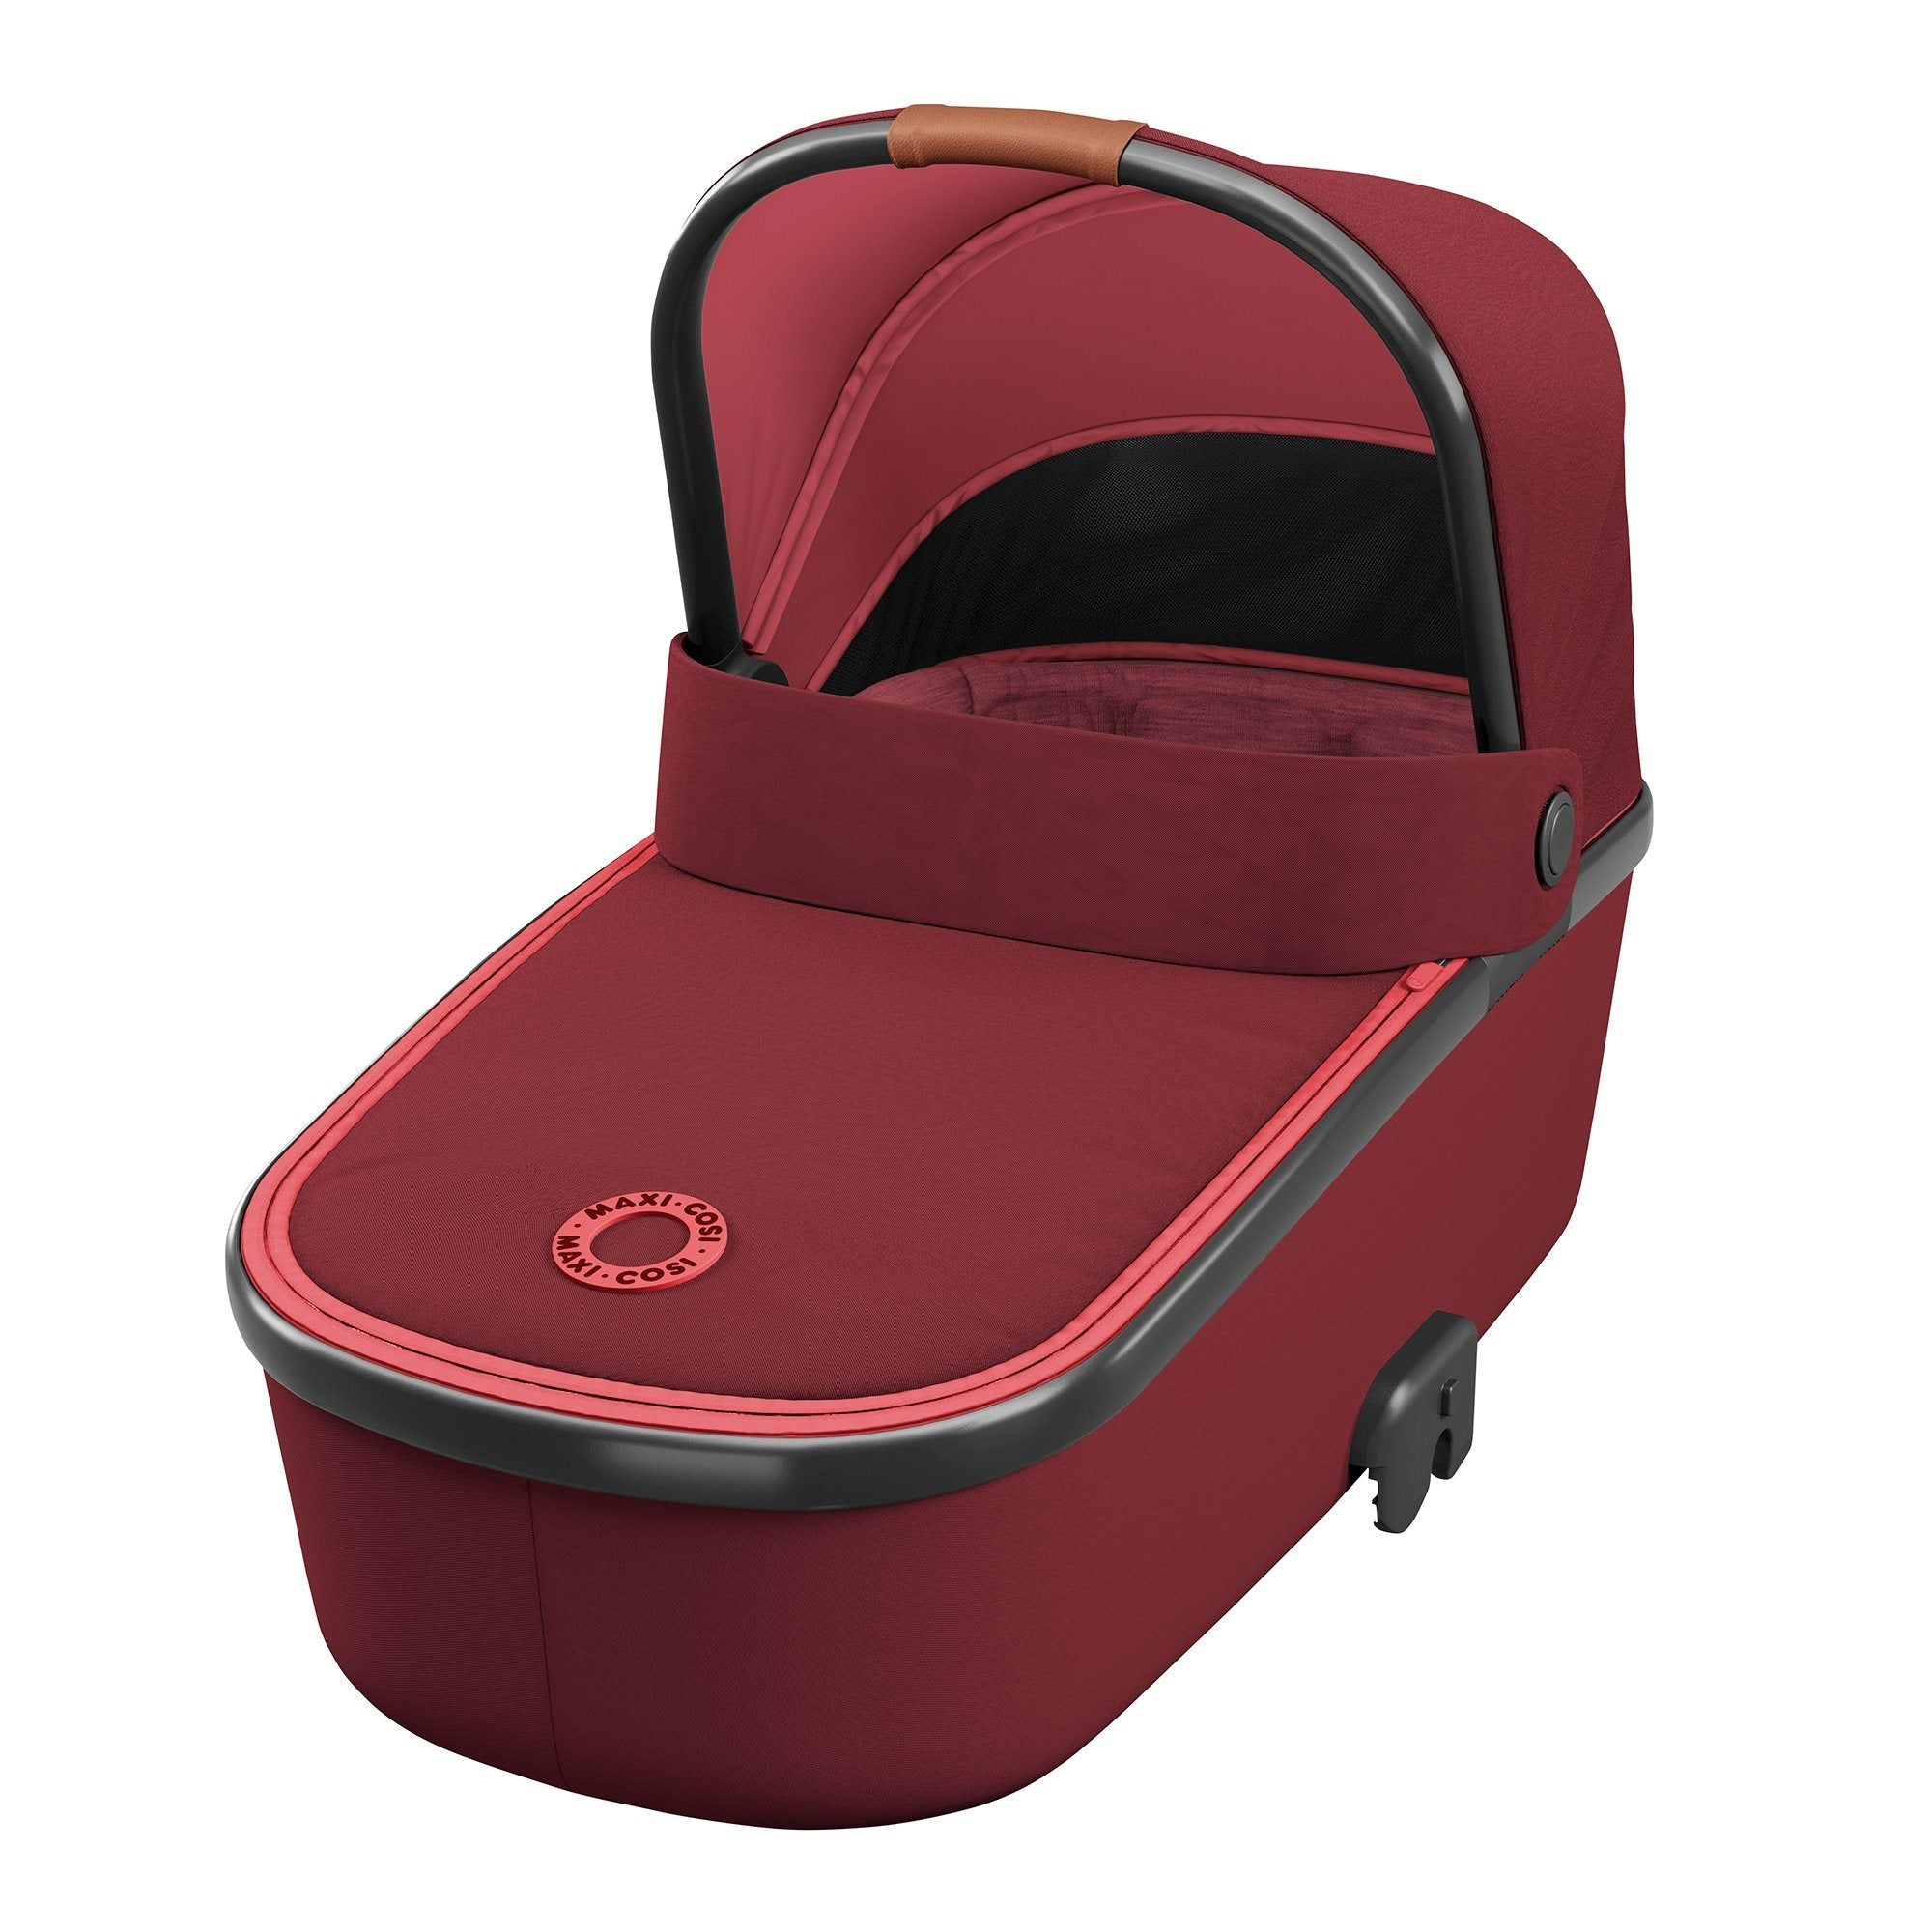 Maxi-Cosi Oria Carrycot - Essential Red - Pushchair Expert